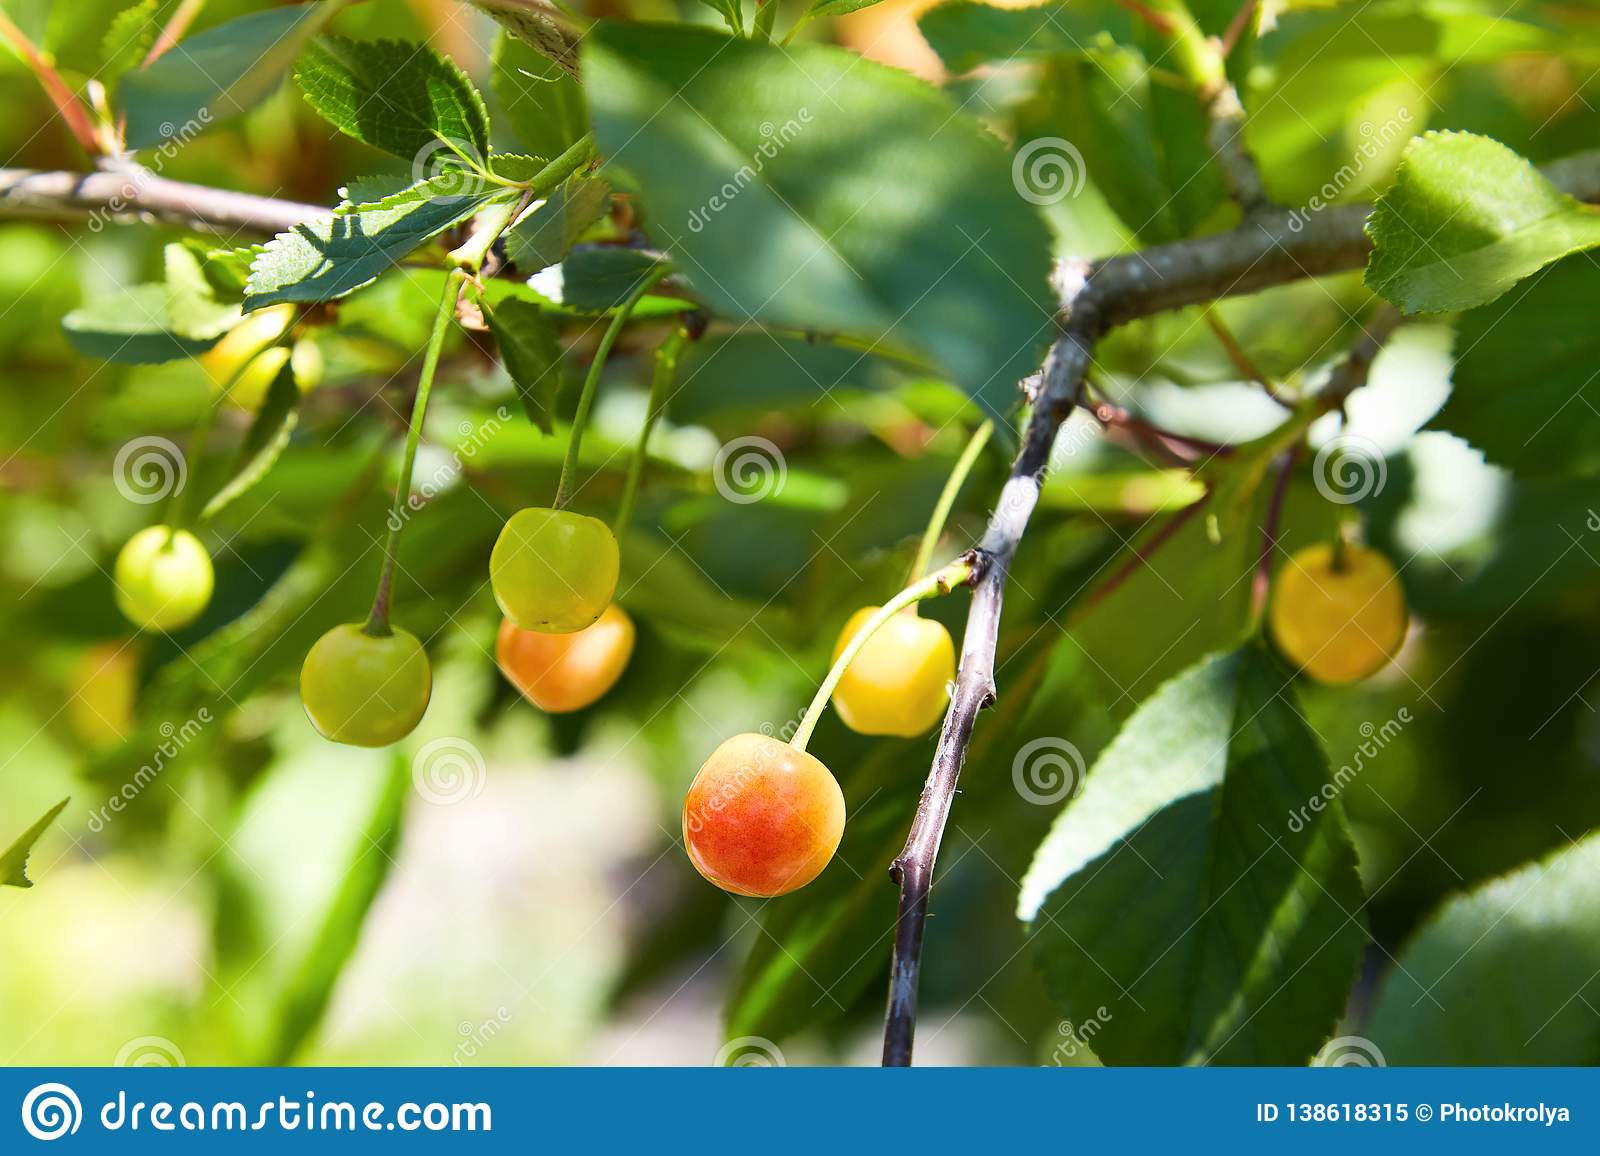 Close-up of a few cherries hanging from a branch with green leaves in the garden.